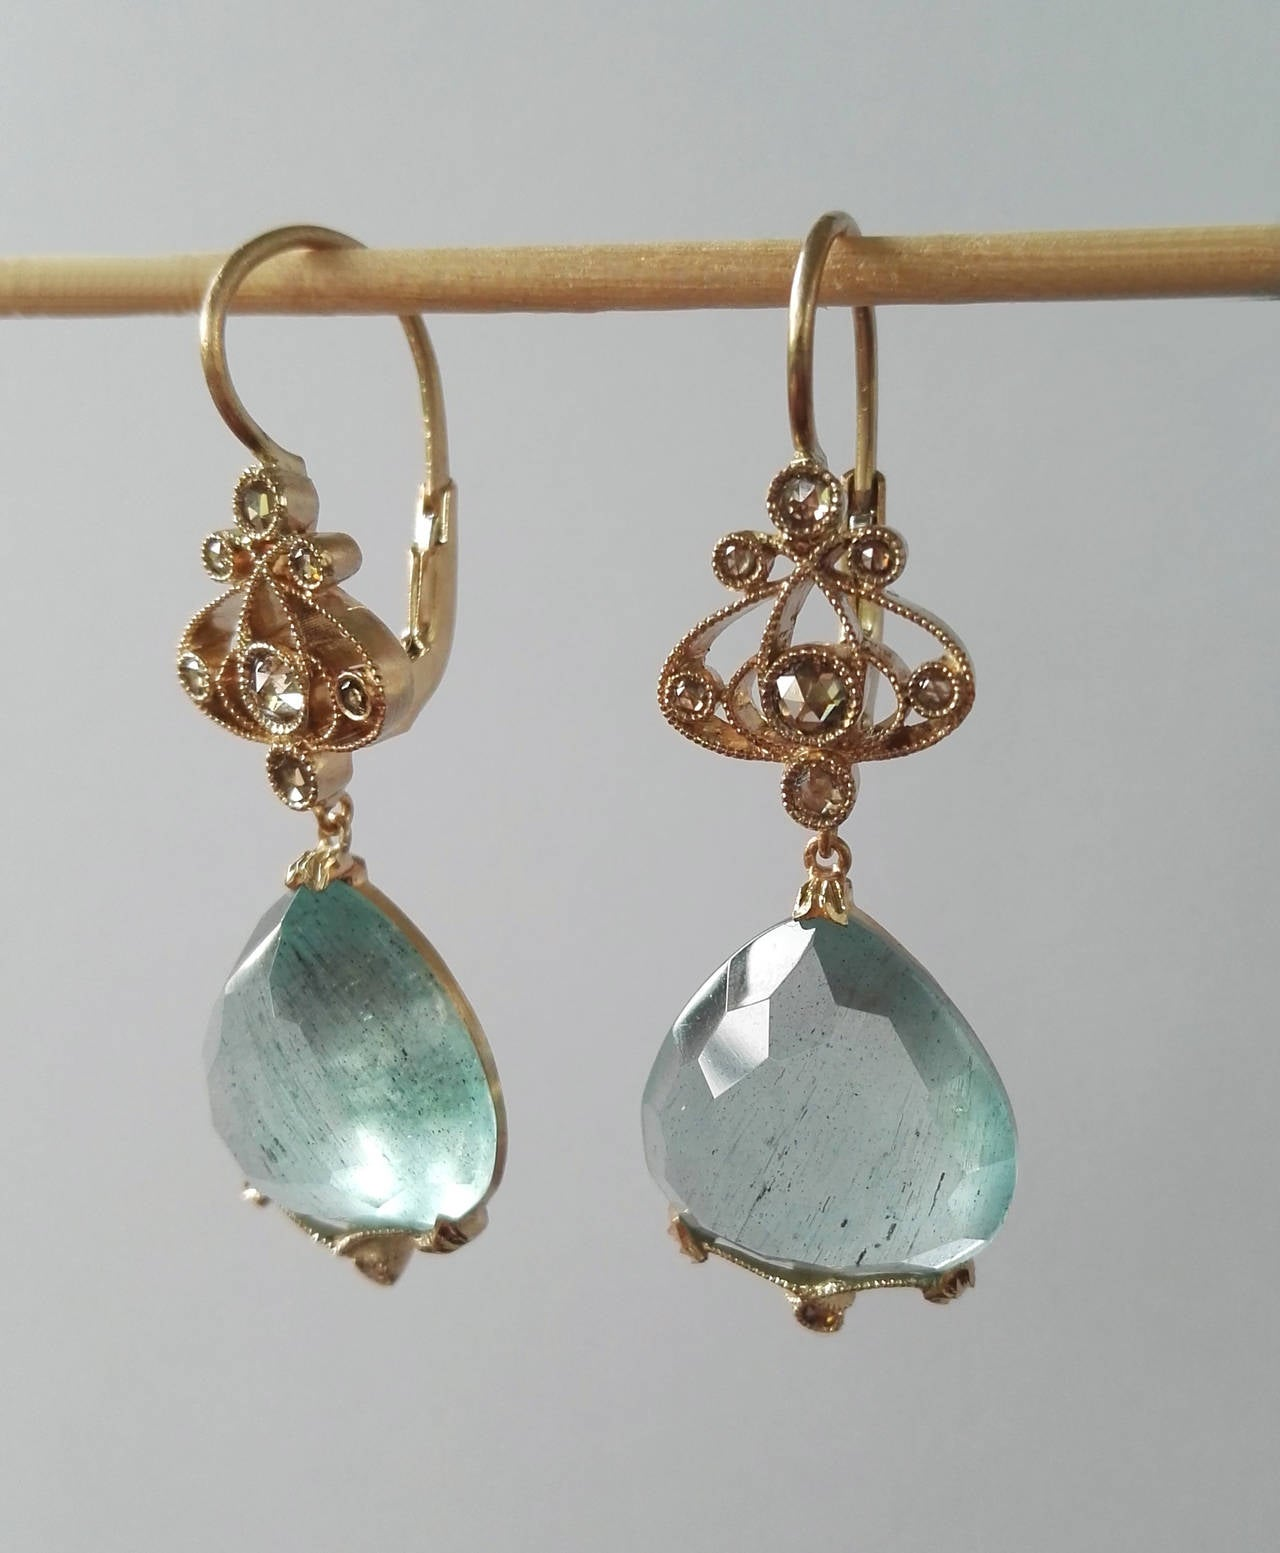 Dalben Aquamarine Diamond Gold Earrings In As new Condition For Sale In Como, IT